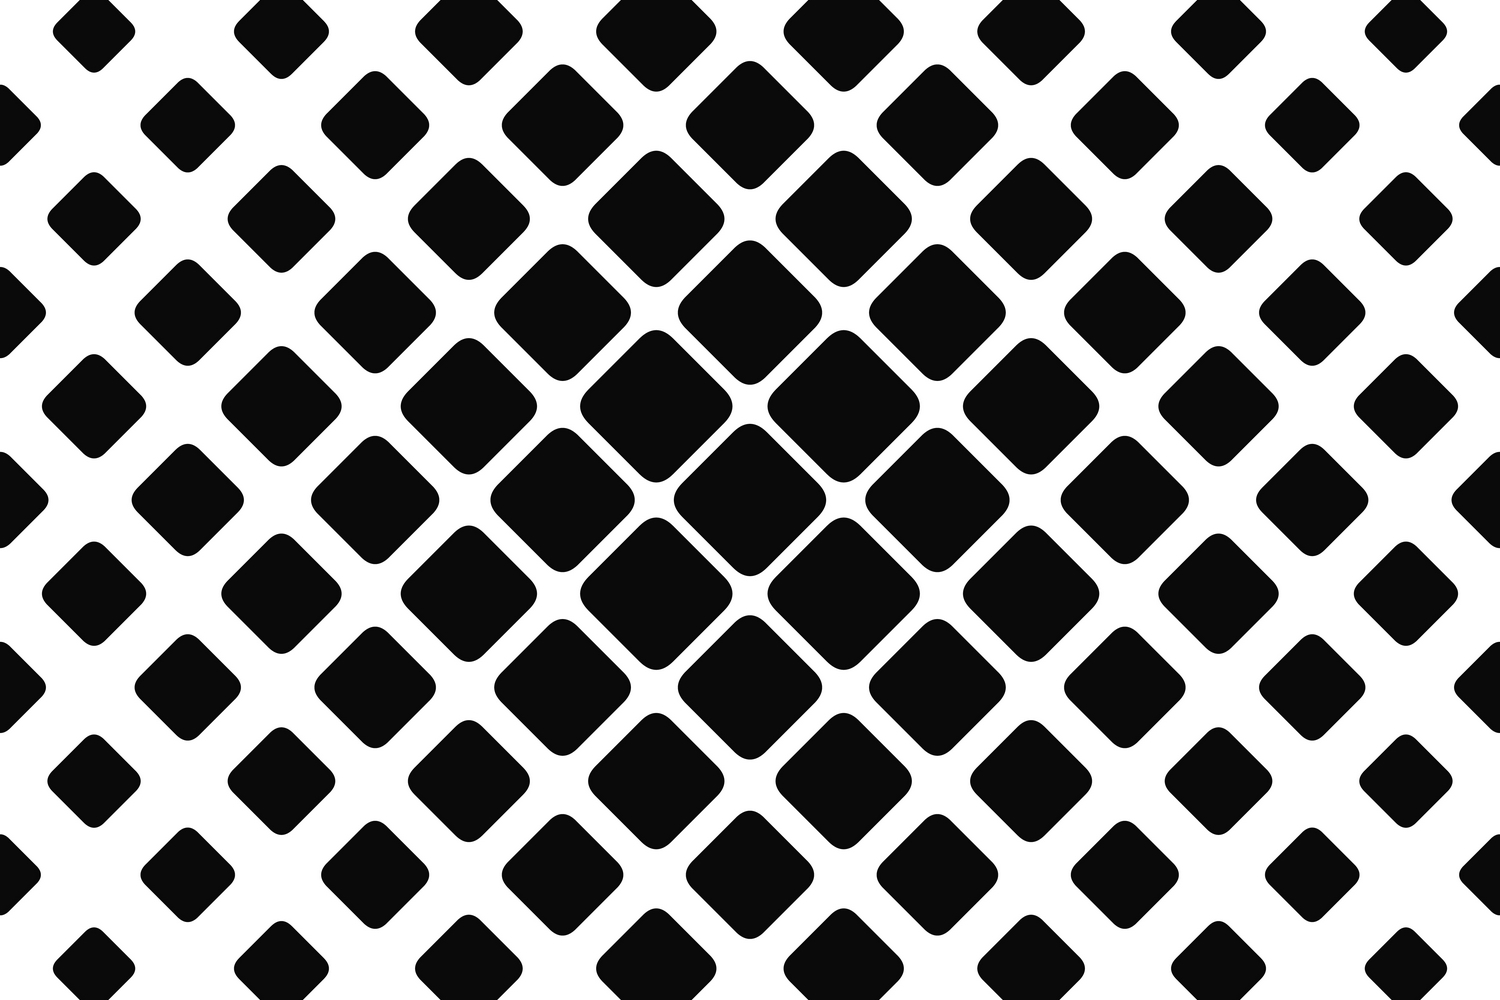 75 Monochrome Geometrical Patterns AI, EPS, JPG 5000x5000 example image 7